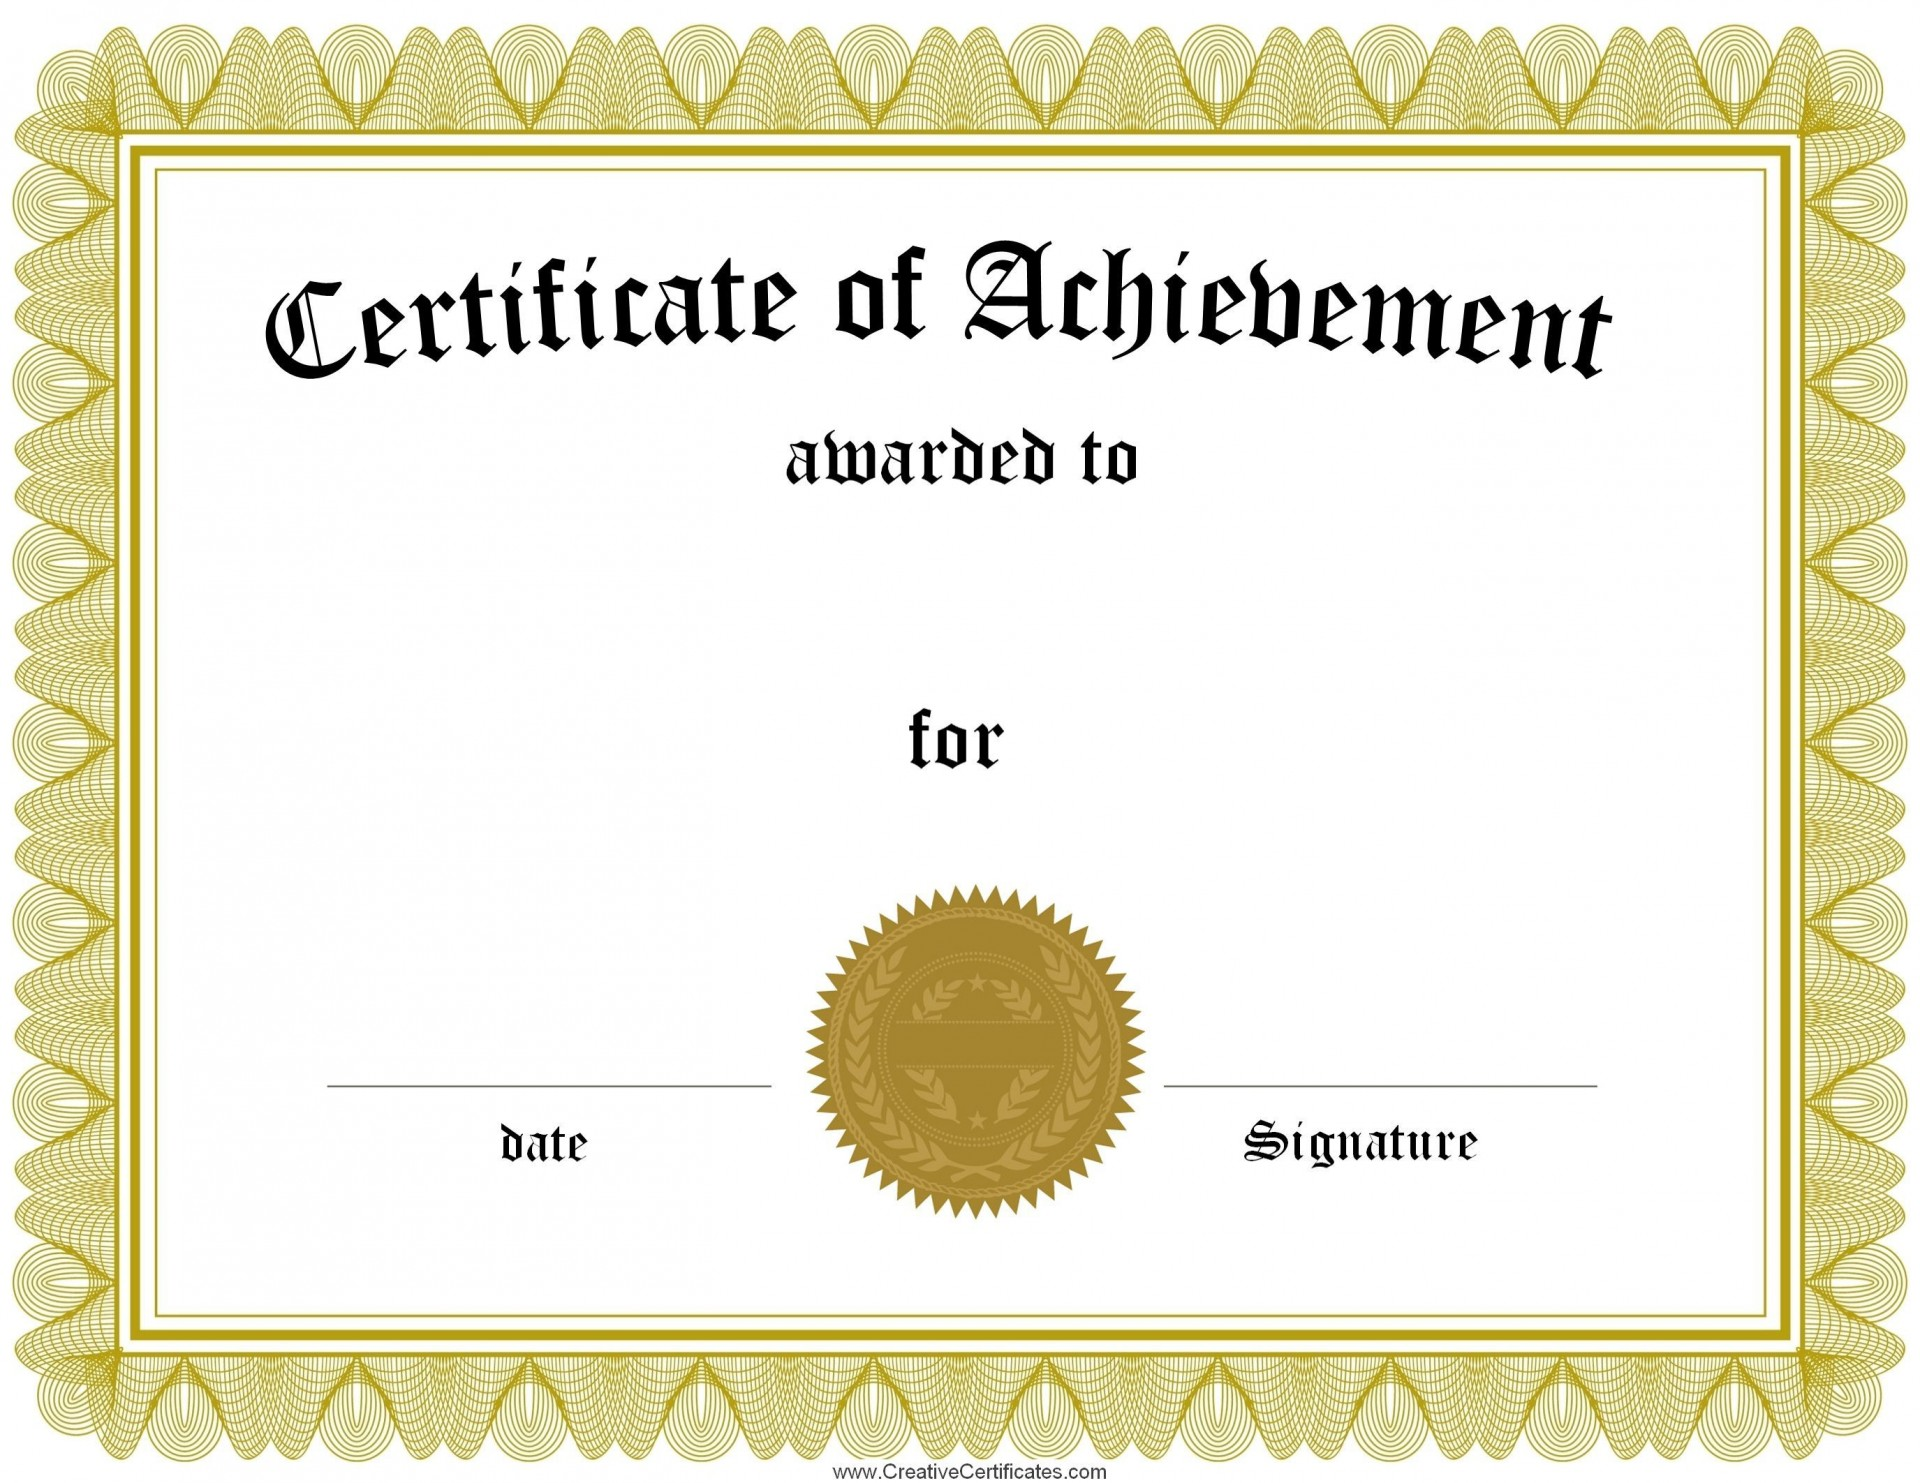 002 Archaicawful Blank Award Certificate Template High Def  Printable Math Editable Free1920